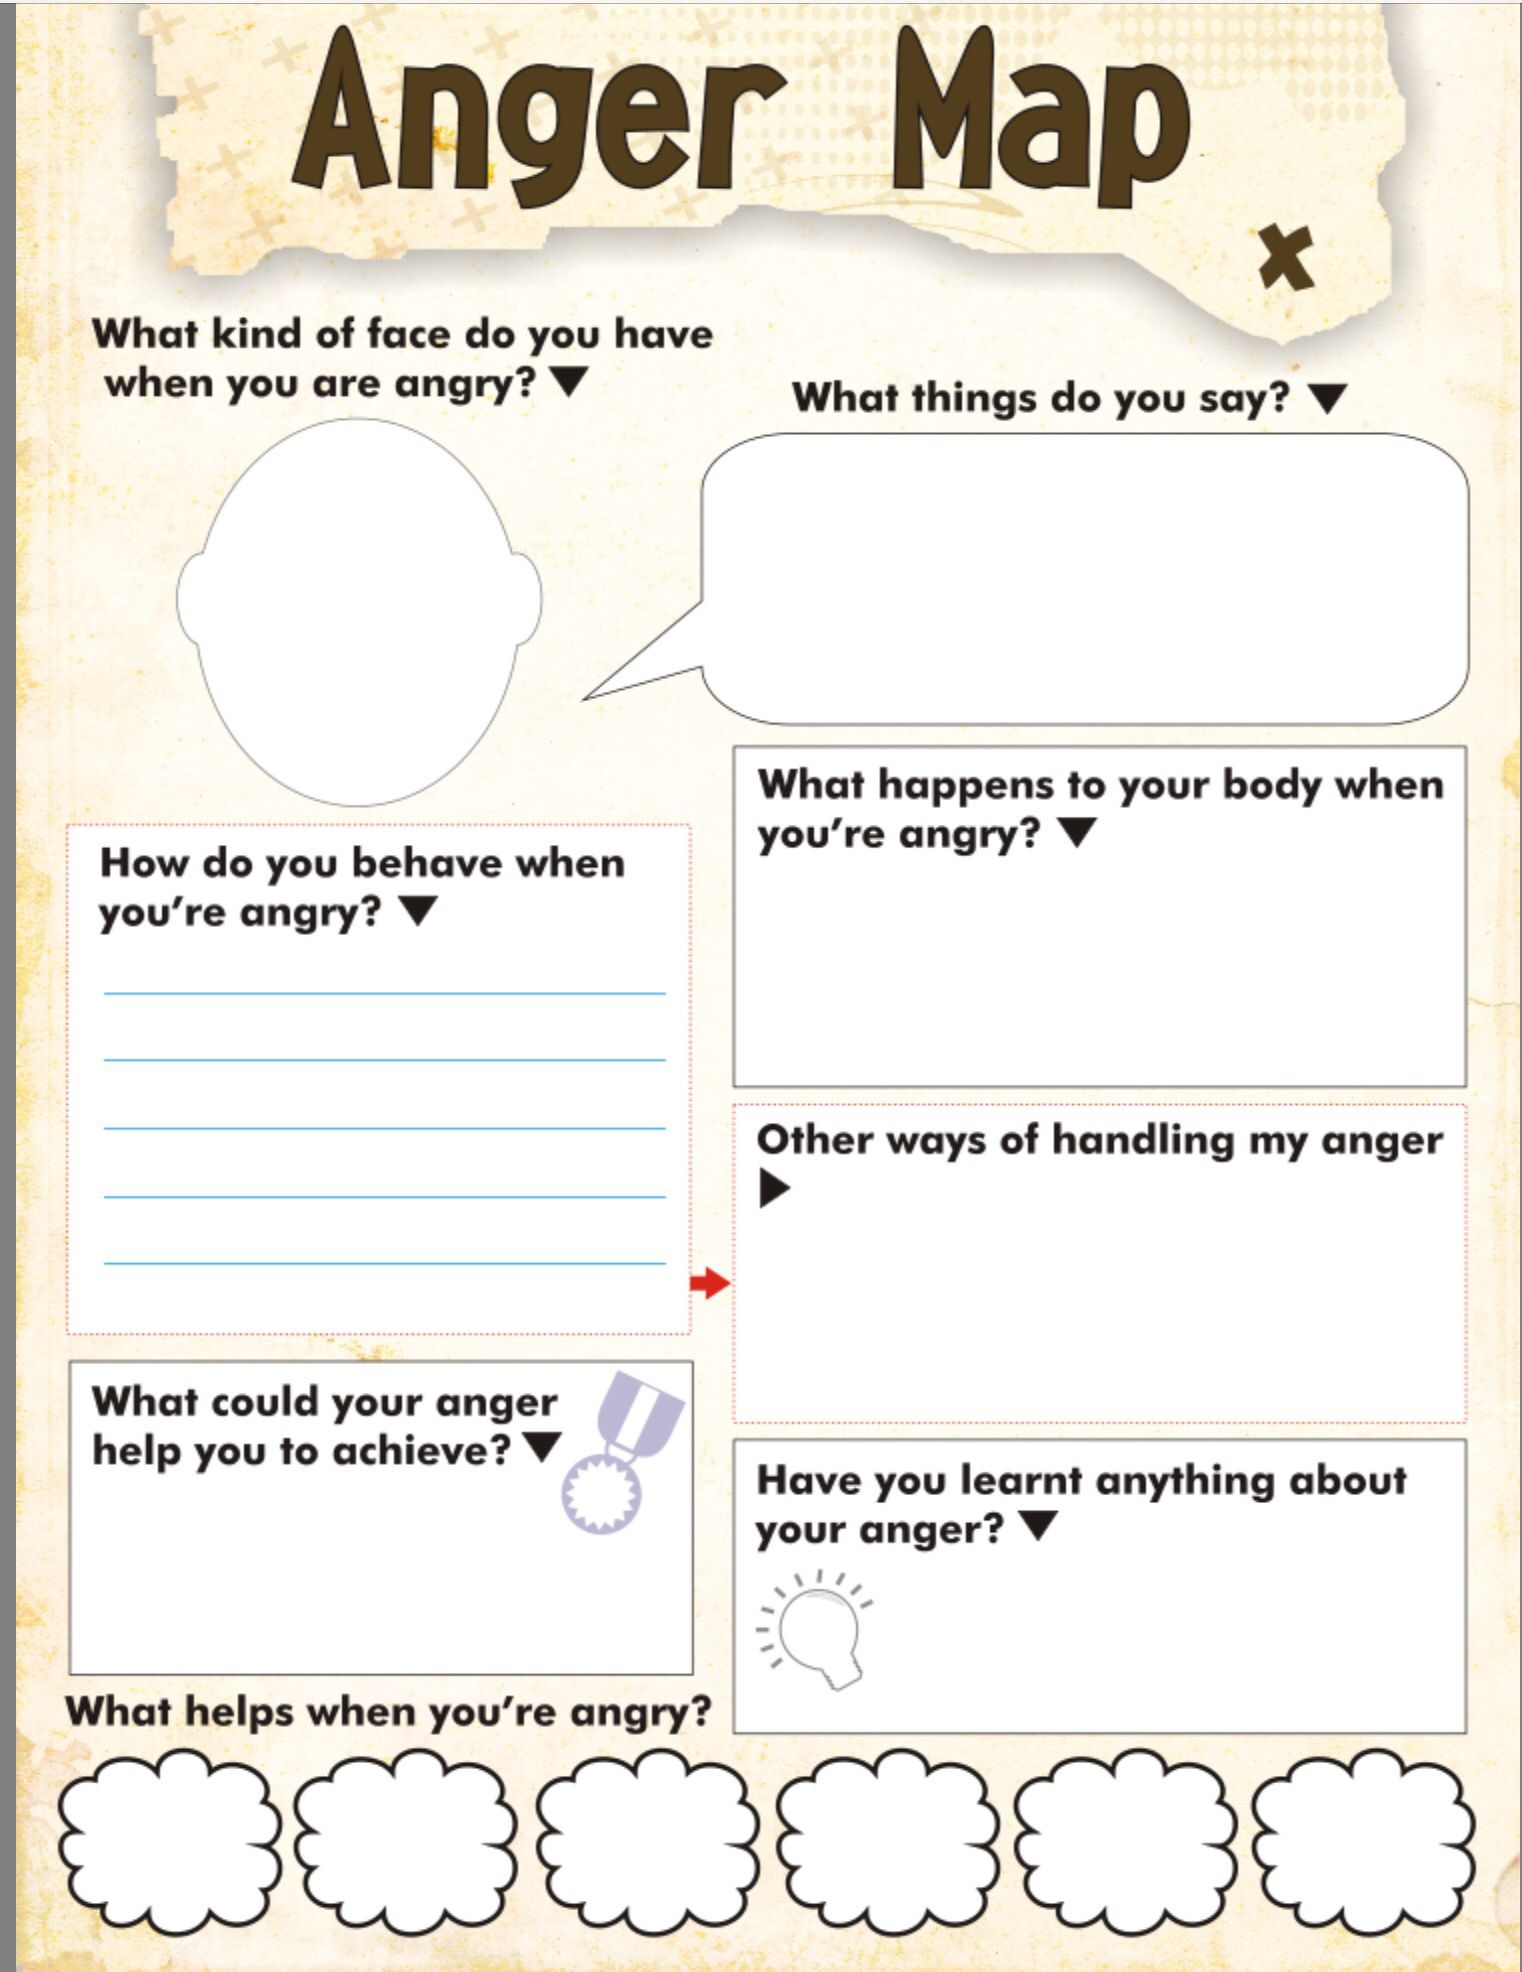 Anger map kids worksheet free printable – Anger Worksheet